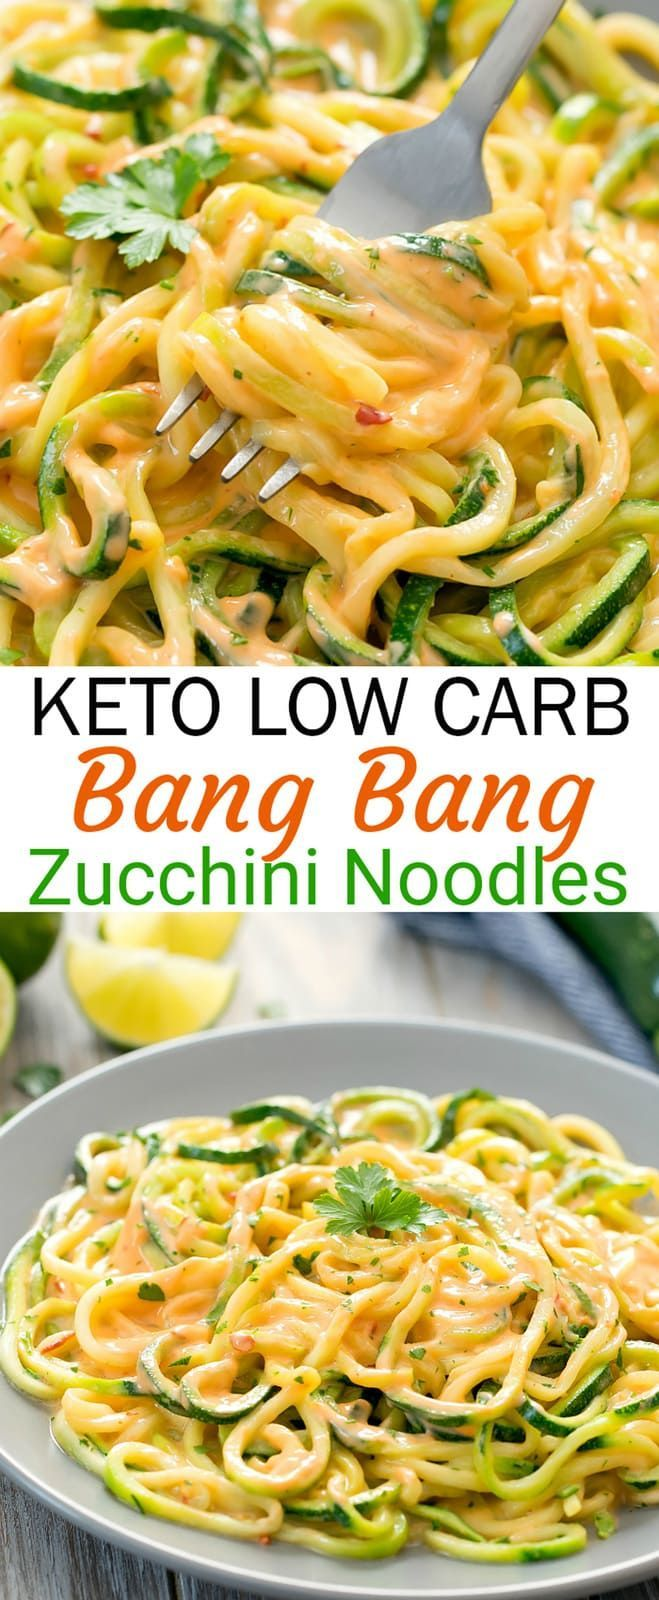 Keto Bang Bang Zucchini Noodles The perfect crepe recipe - SO EASY to make and completely delicious! The best part about these crepes is they can be made right in your blender. Not only are they great for breakfast, but dessert too! #easypierecipes